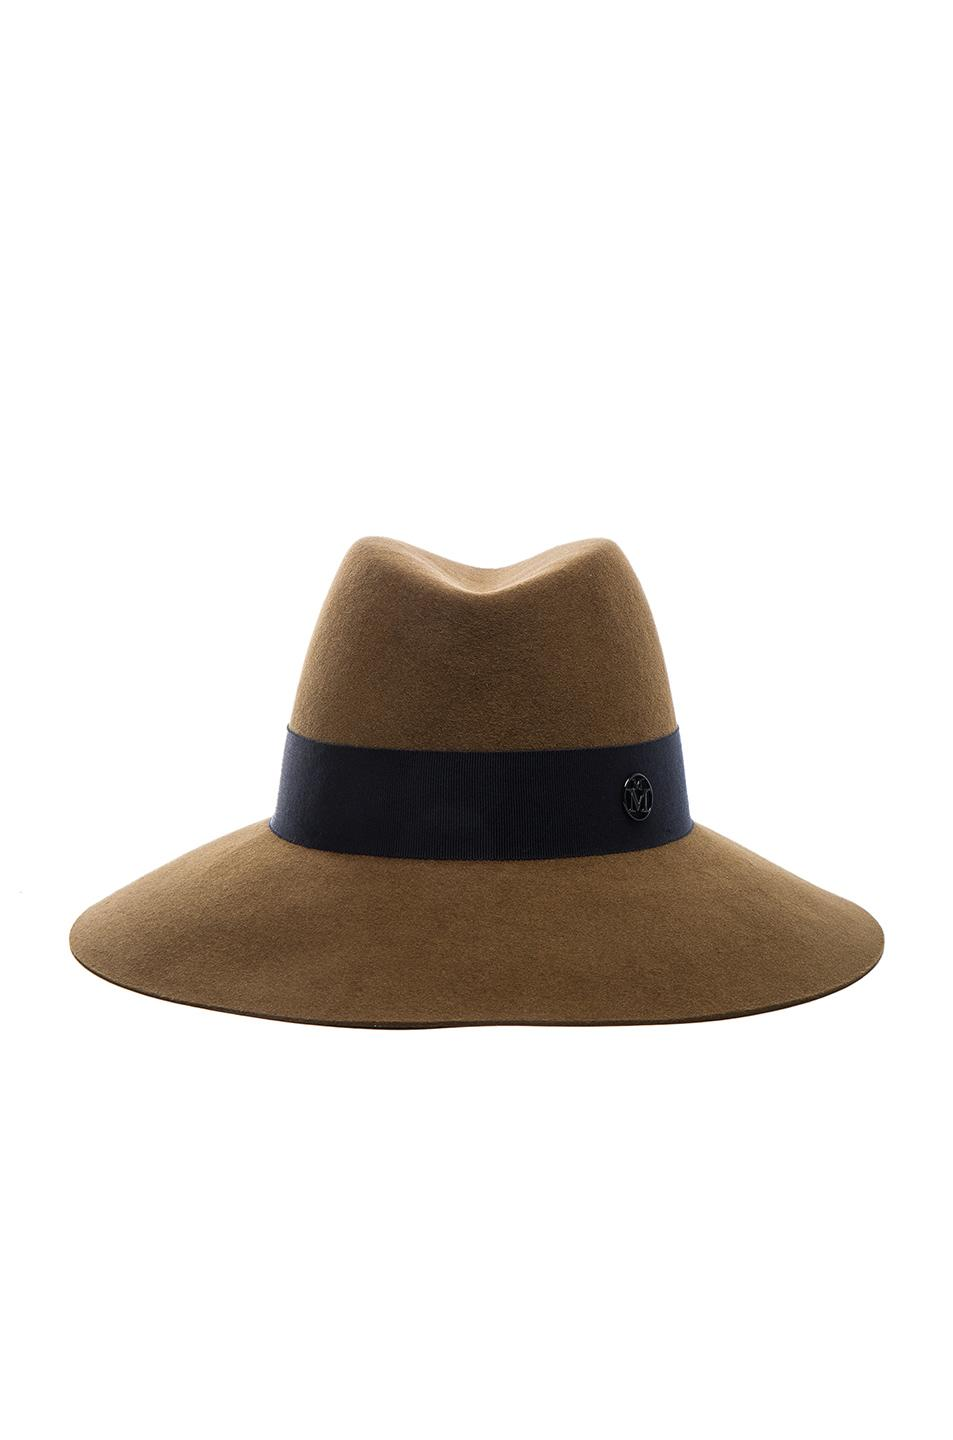 Lyst maison michel kate hat in brown for Maison michel